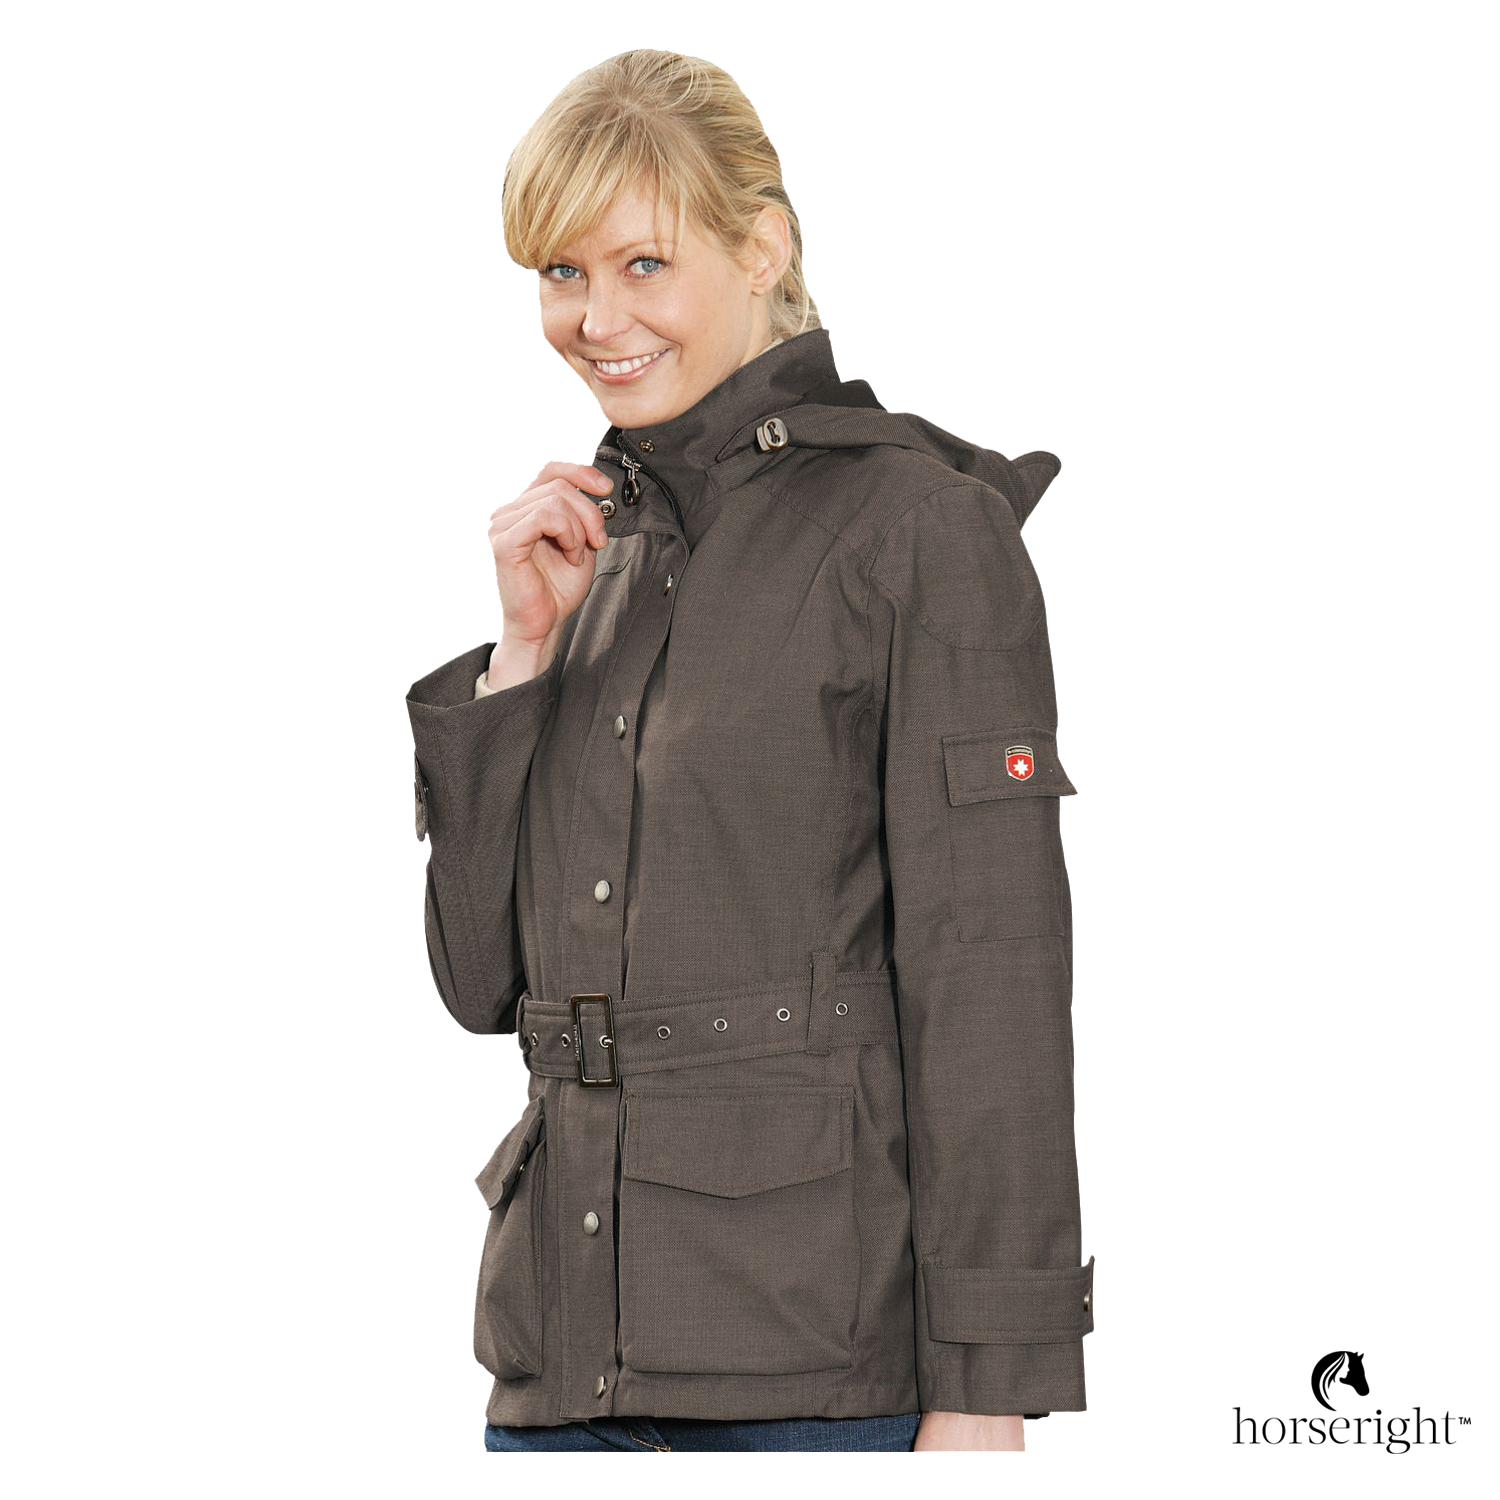 Wellensteyn Barbados Women's Summer Jacket